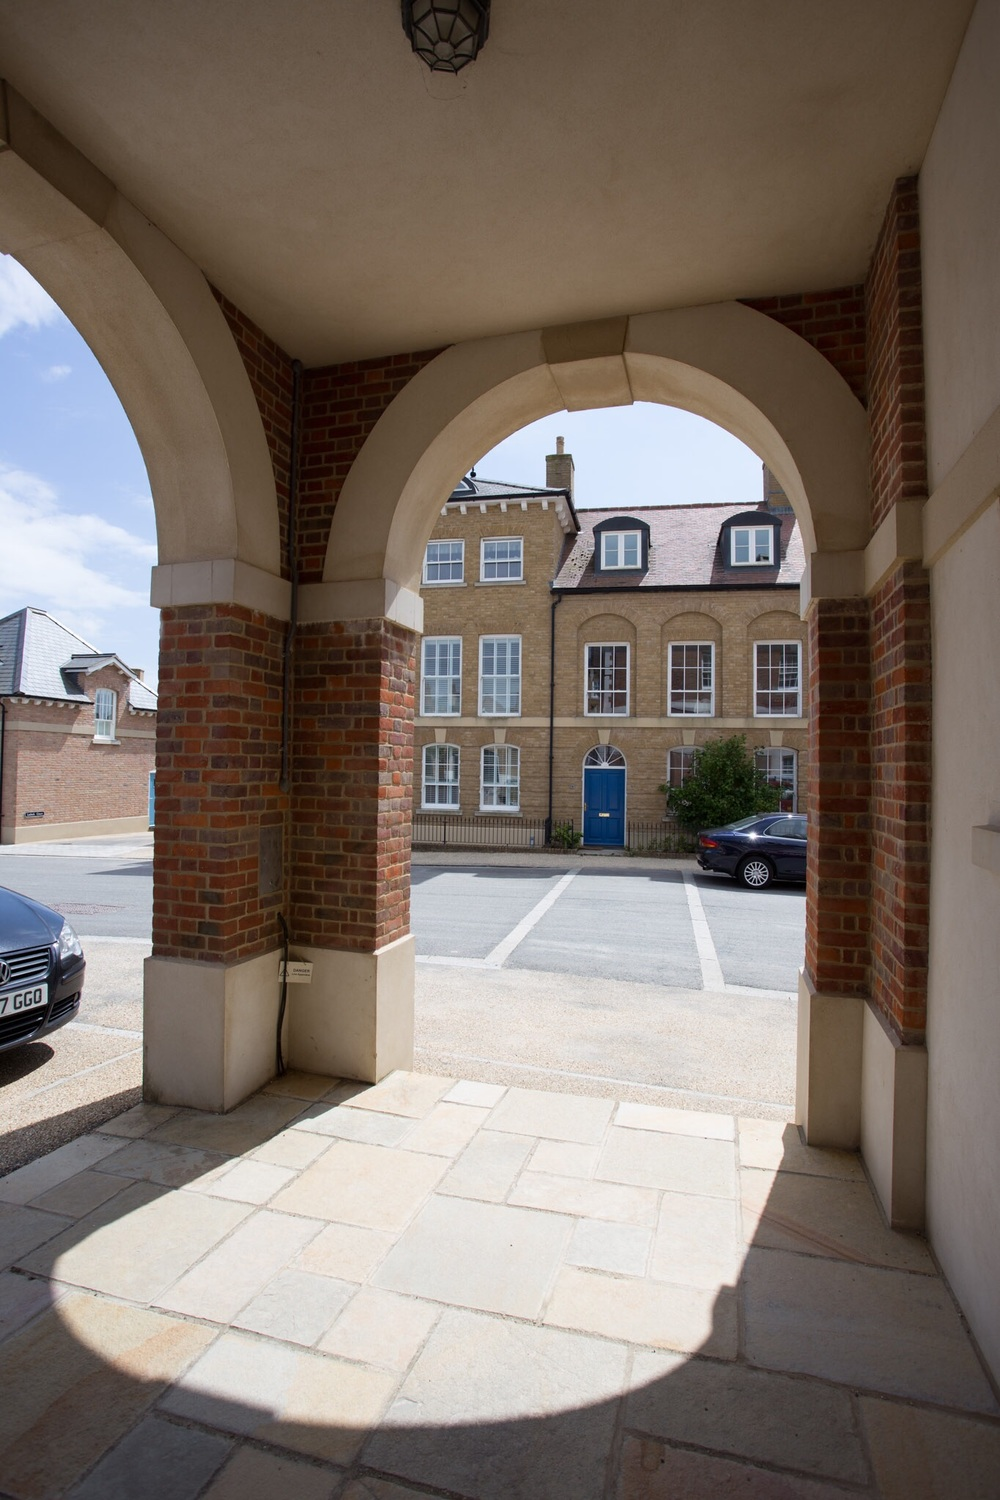 RAW file of the picture of Poundbury